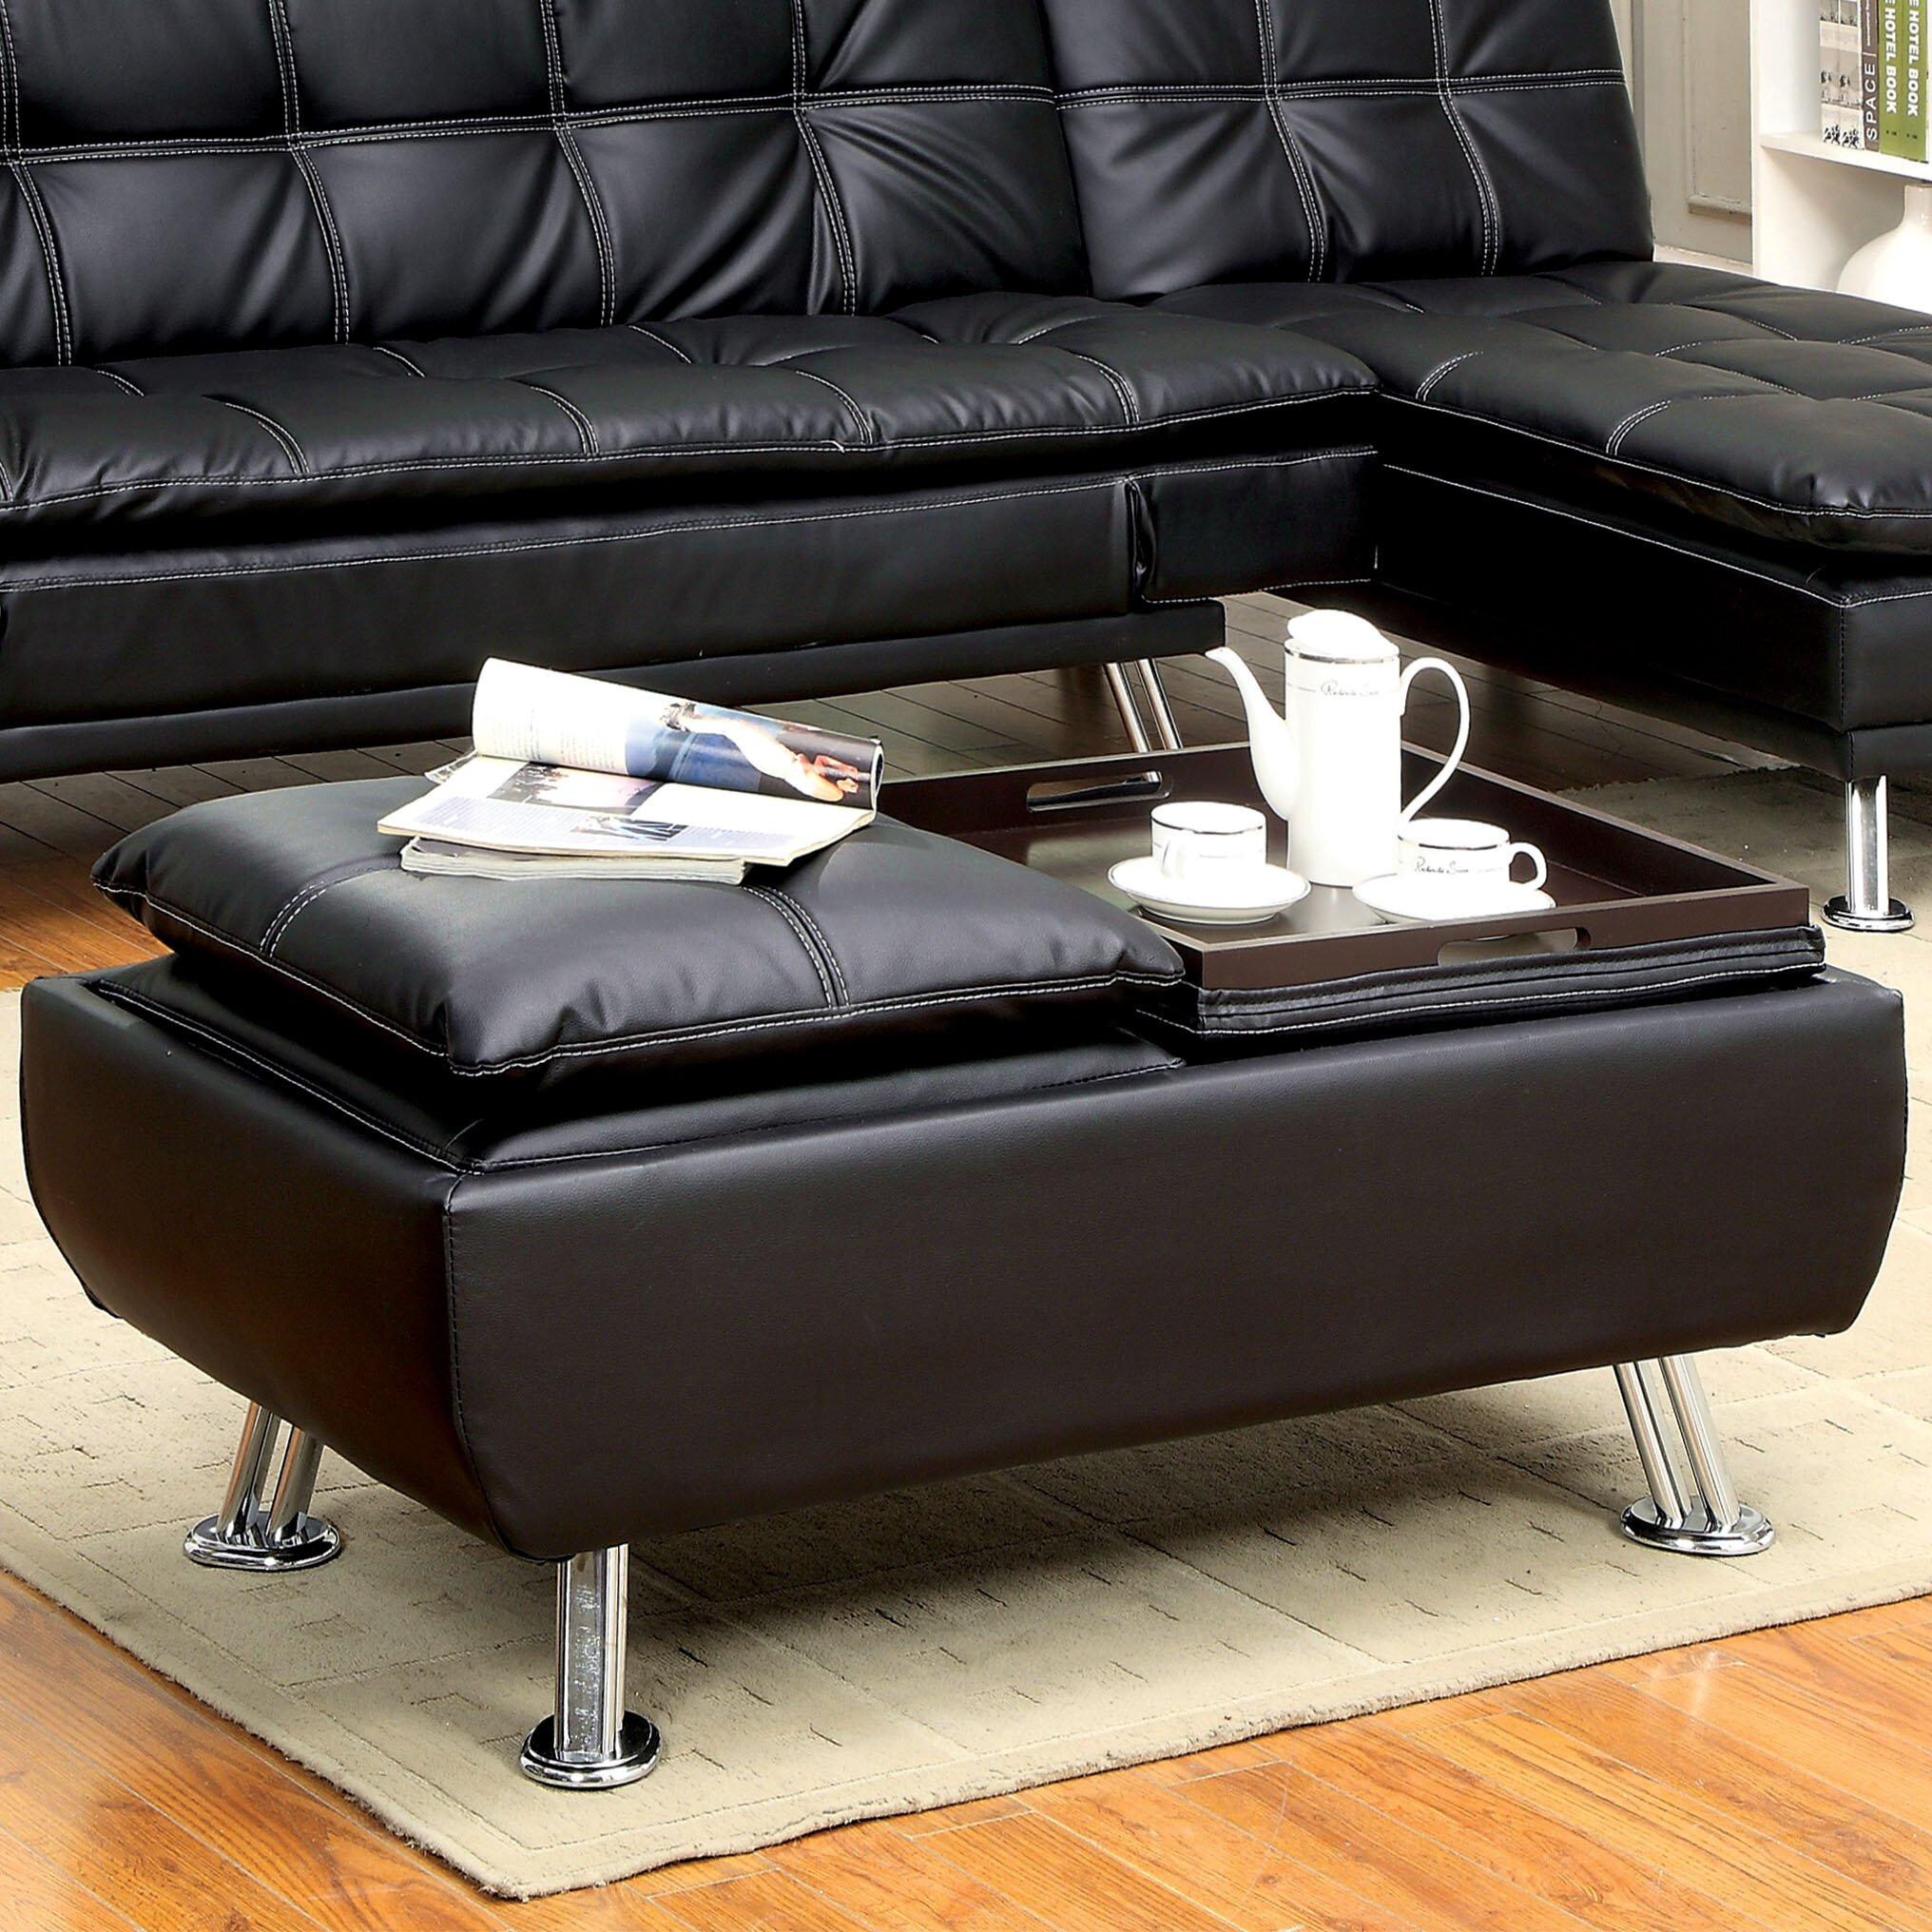 Ottoman With Flip Top Tray Storage Ottoman Boxes With Flip Top Tray For In Front Of The Place